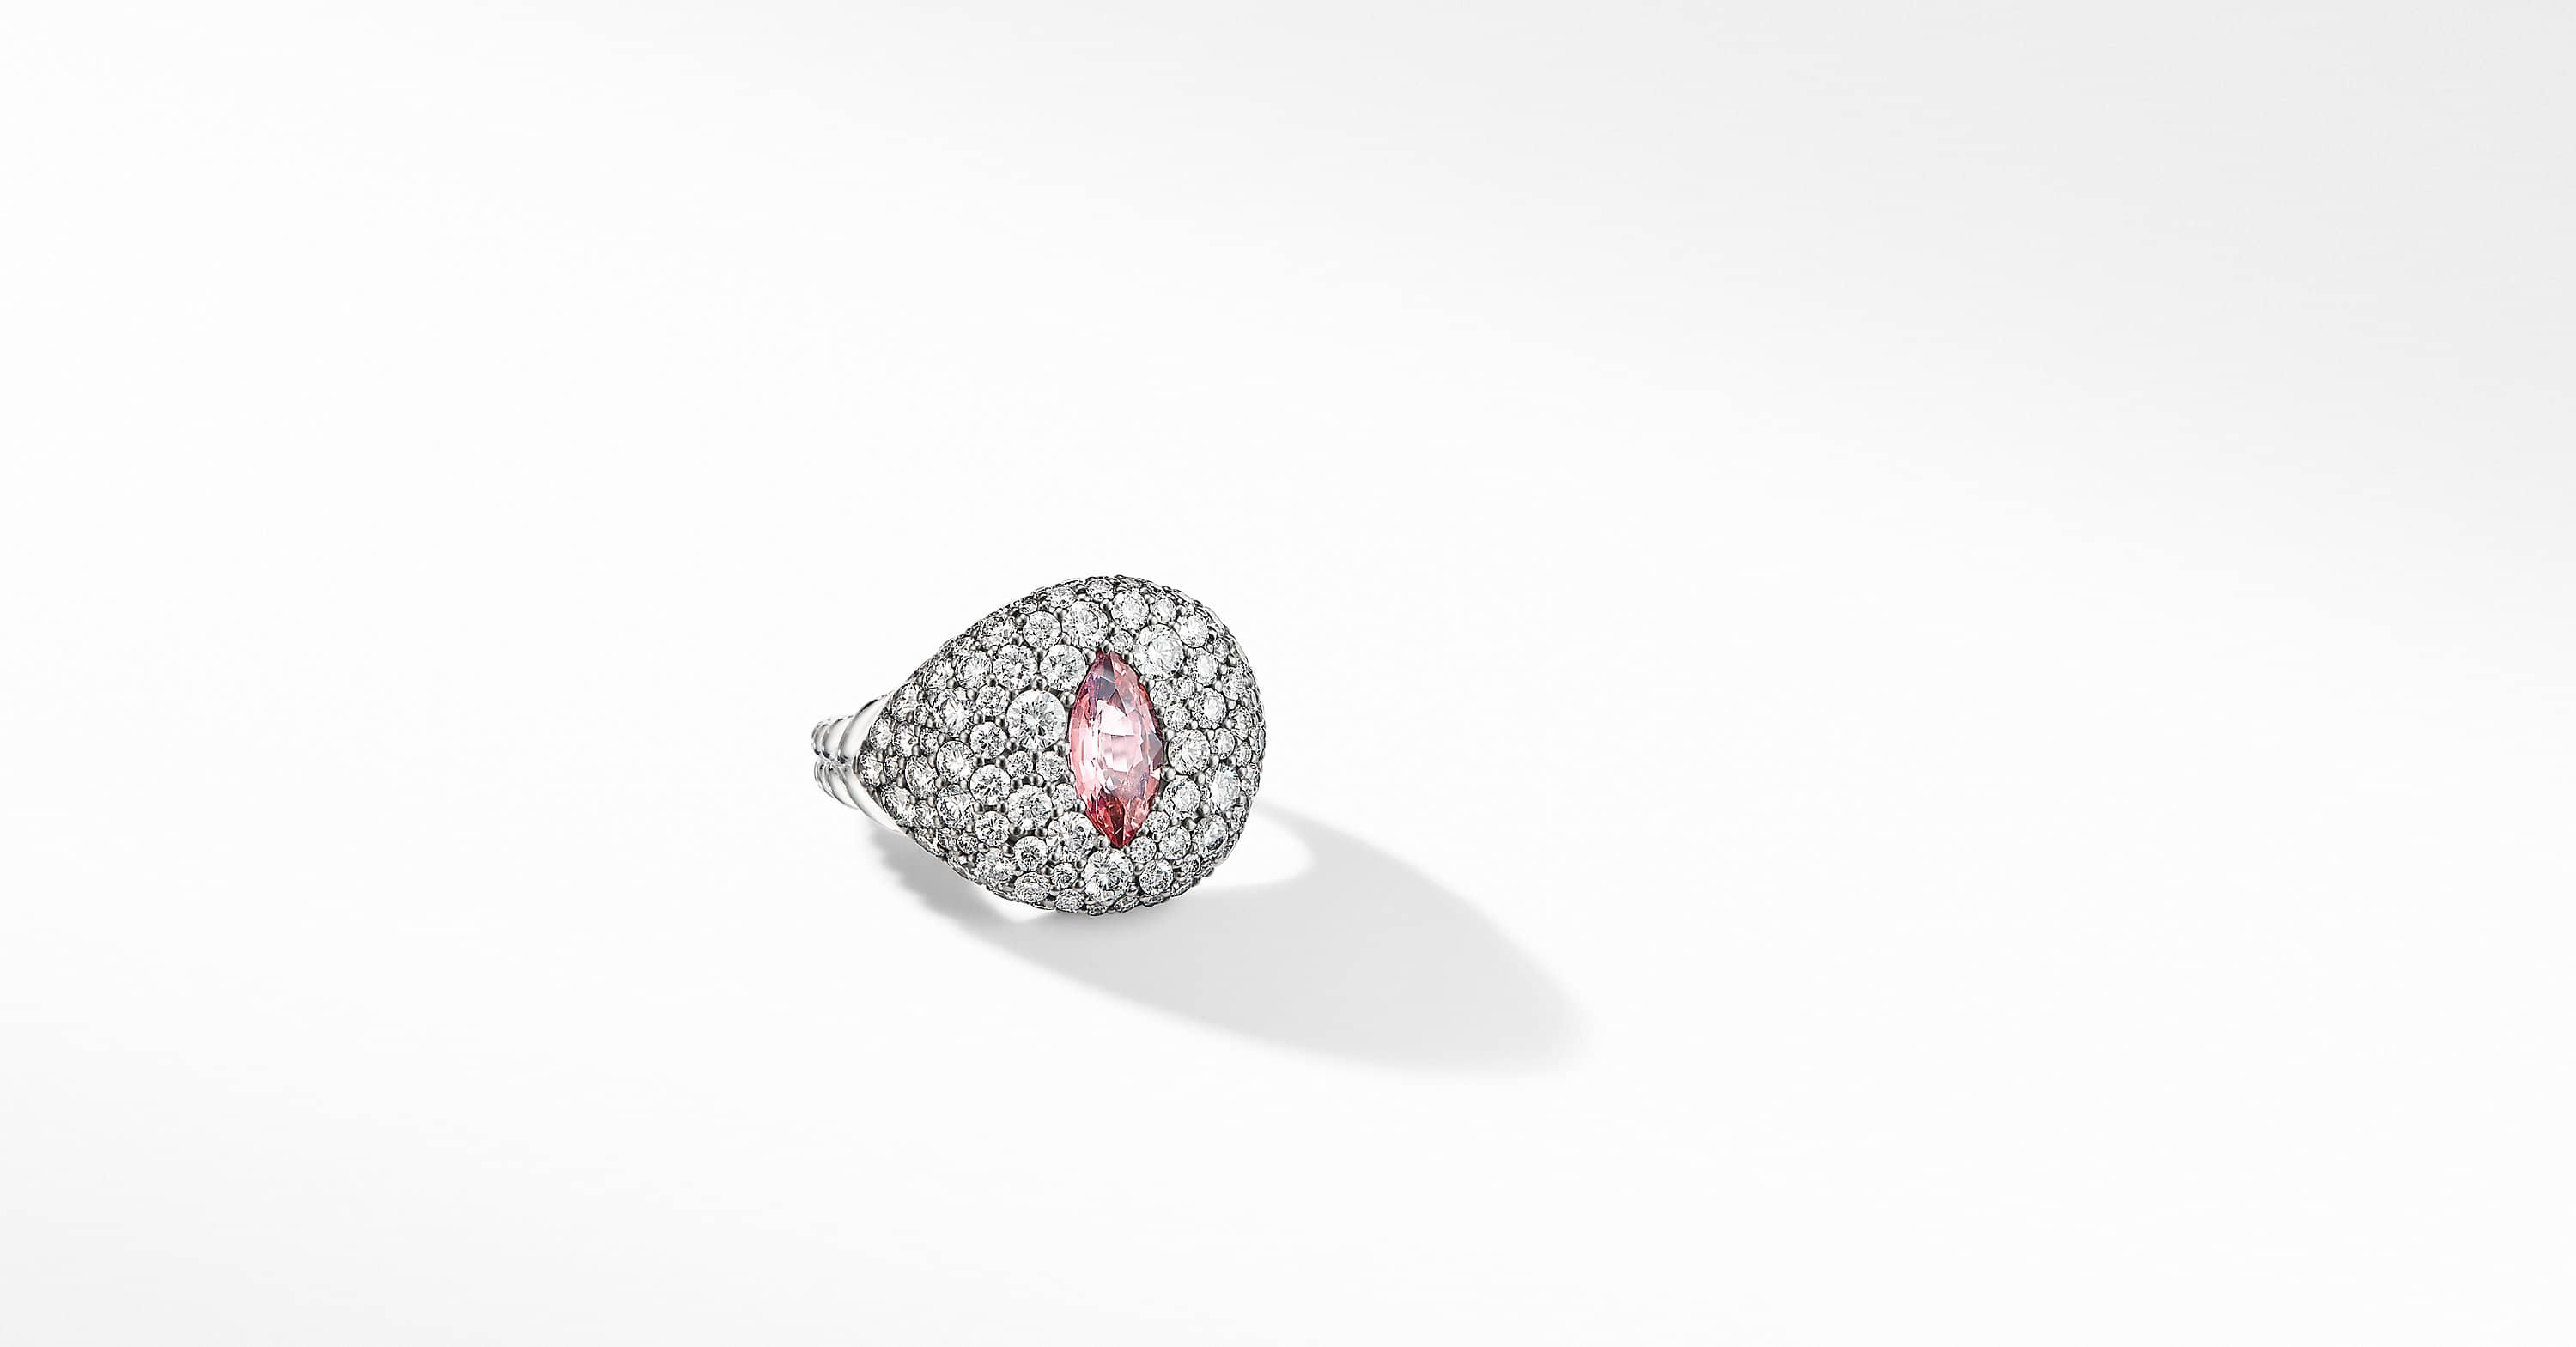 Pavé Pinky Ring in 18K White Gold with Padparascha Sapphires